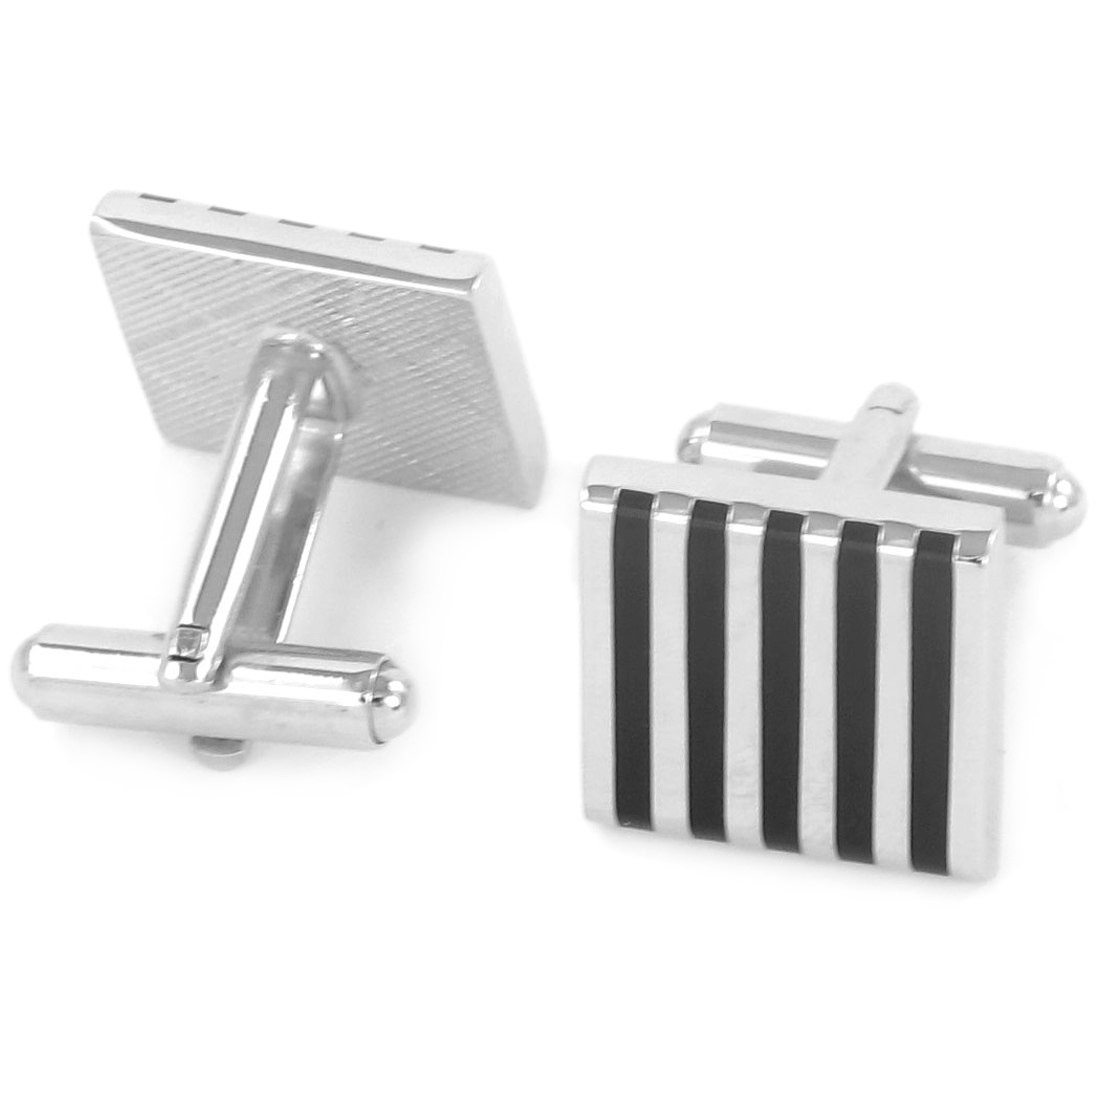 Pair Blue Black Stripes Print Tuxedo Decor Cufflinks Cuff Links for Groom Man